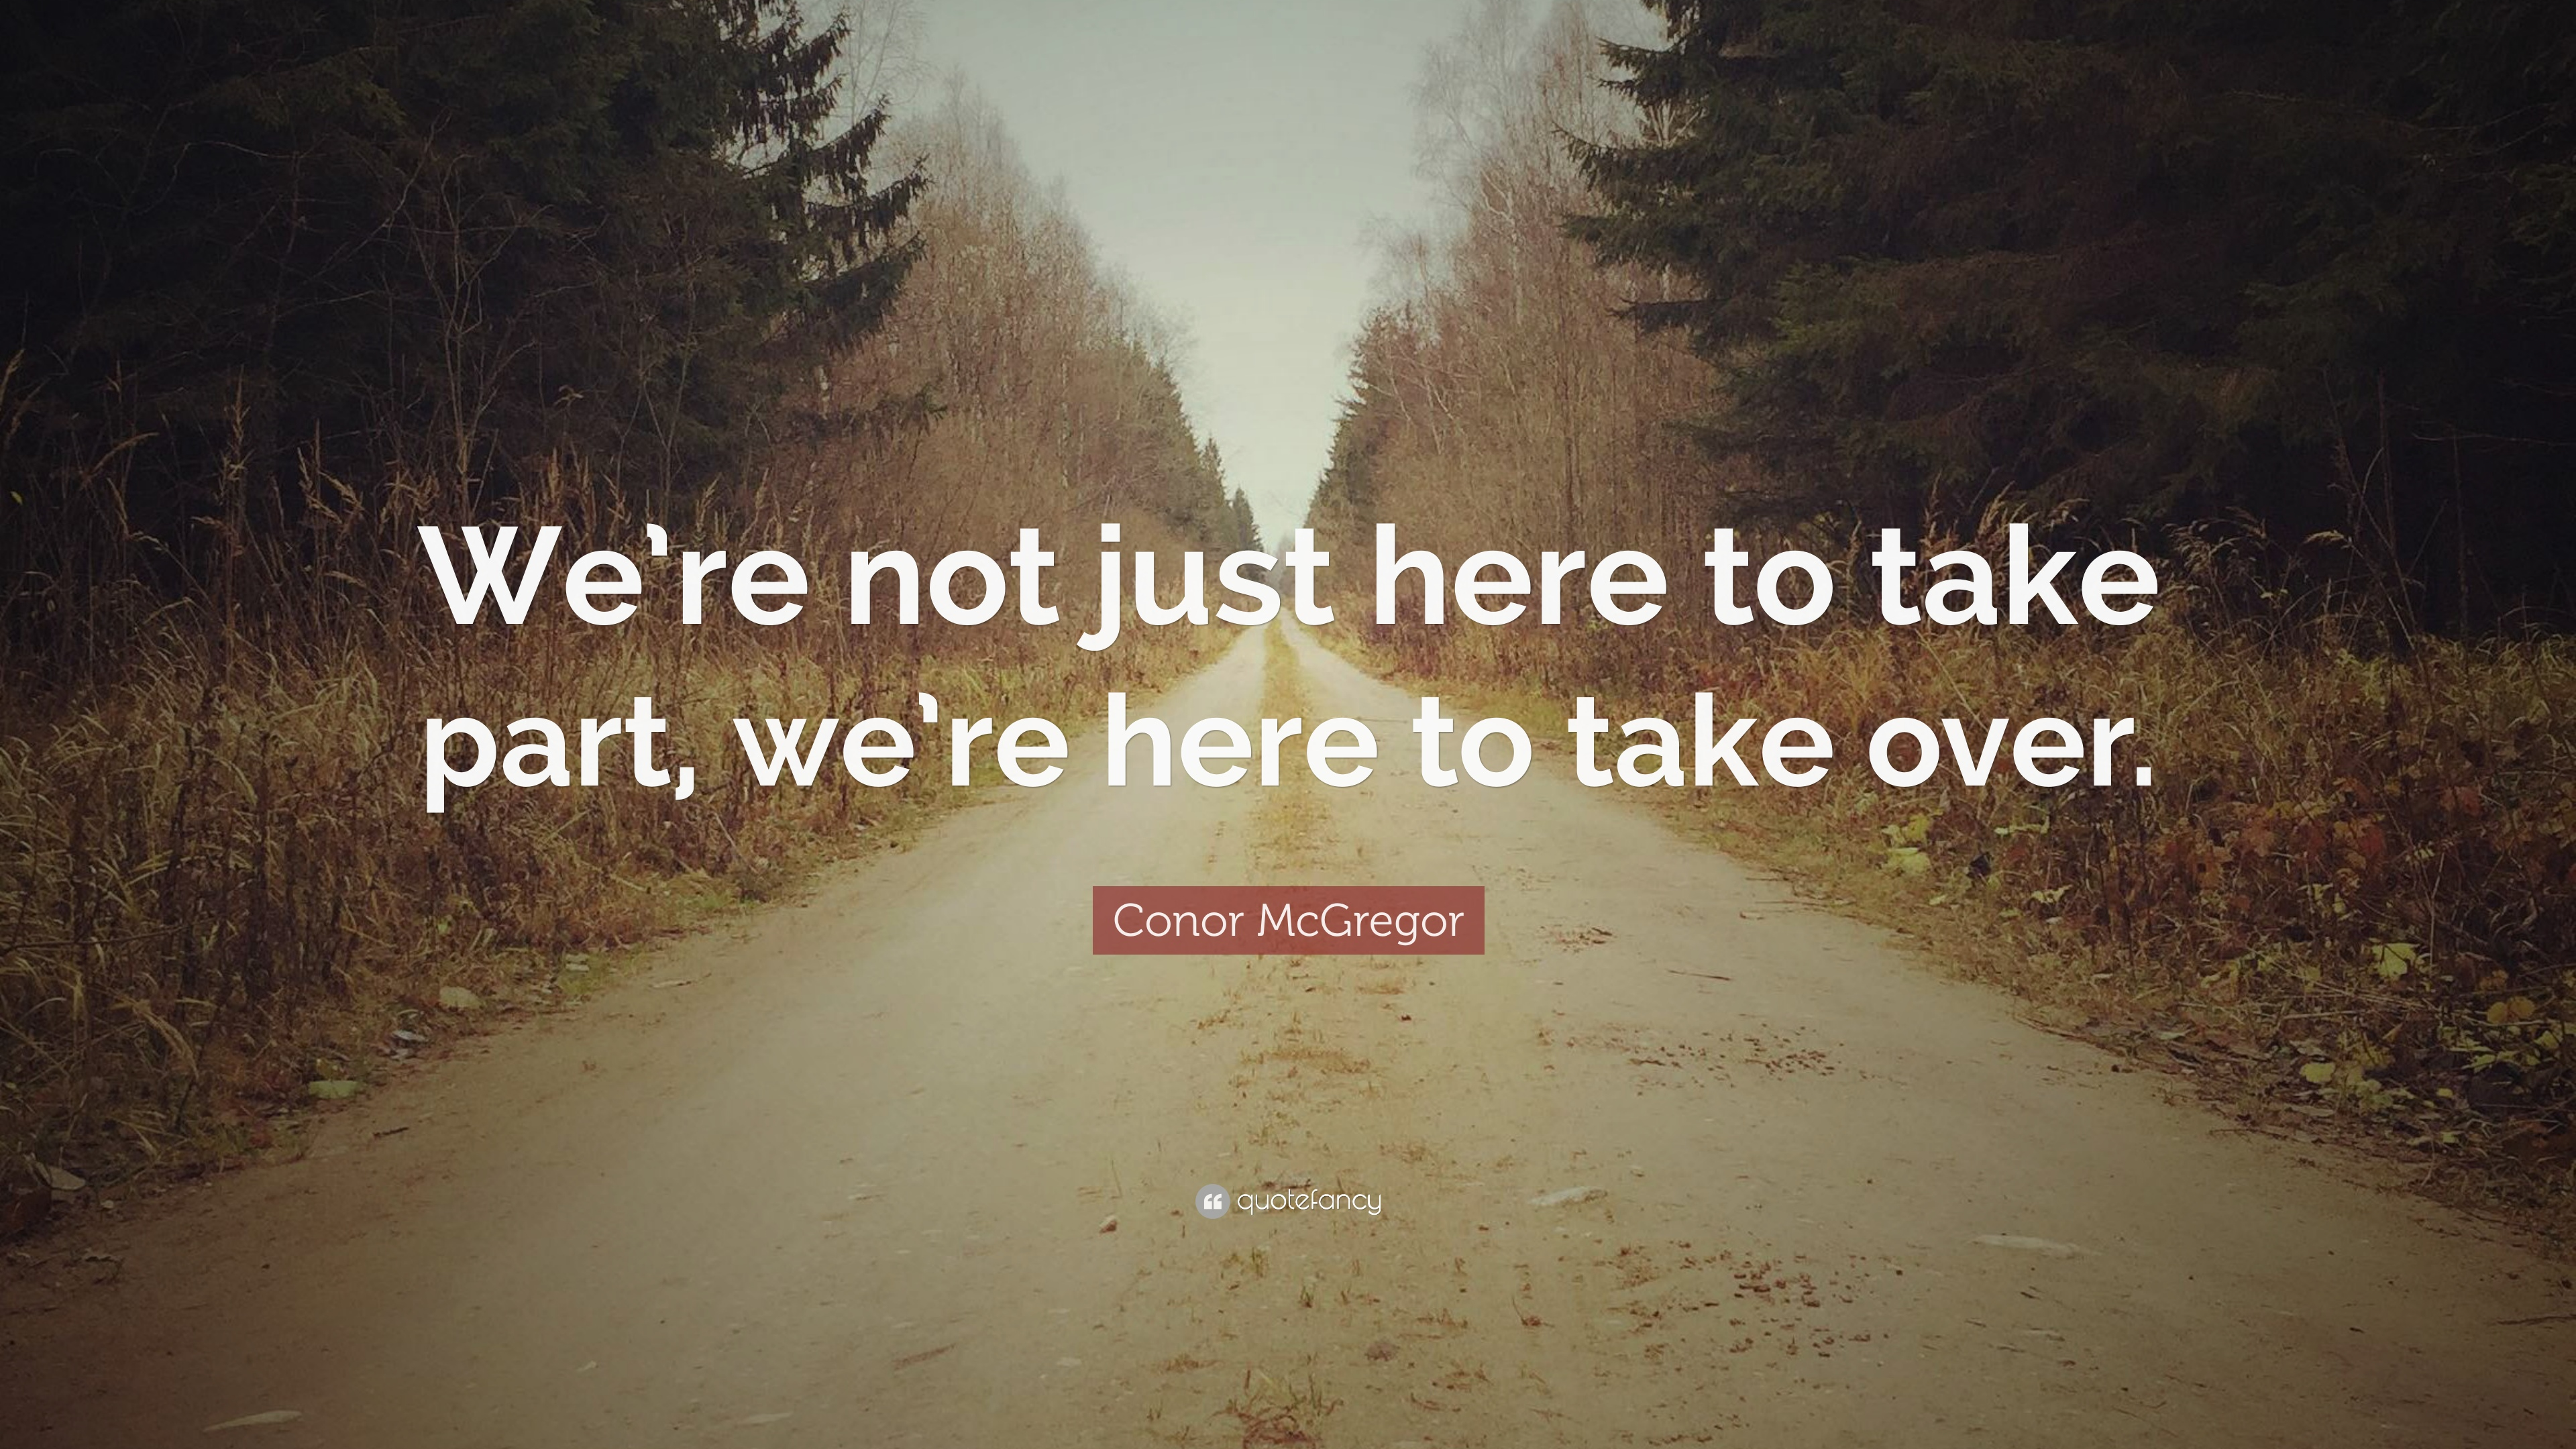 Casey Neistat Quotes Wallpaper Conor Mcgregor Quote We Re Not Just Here To Take Part